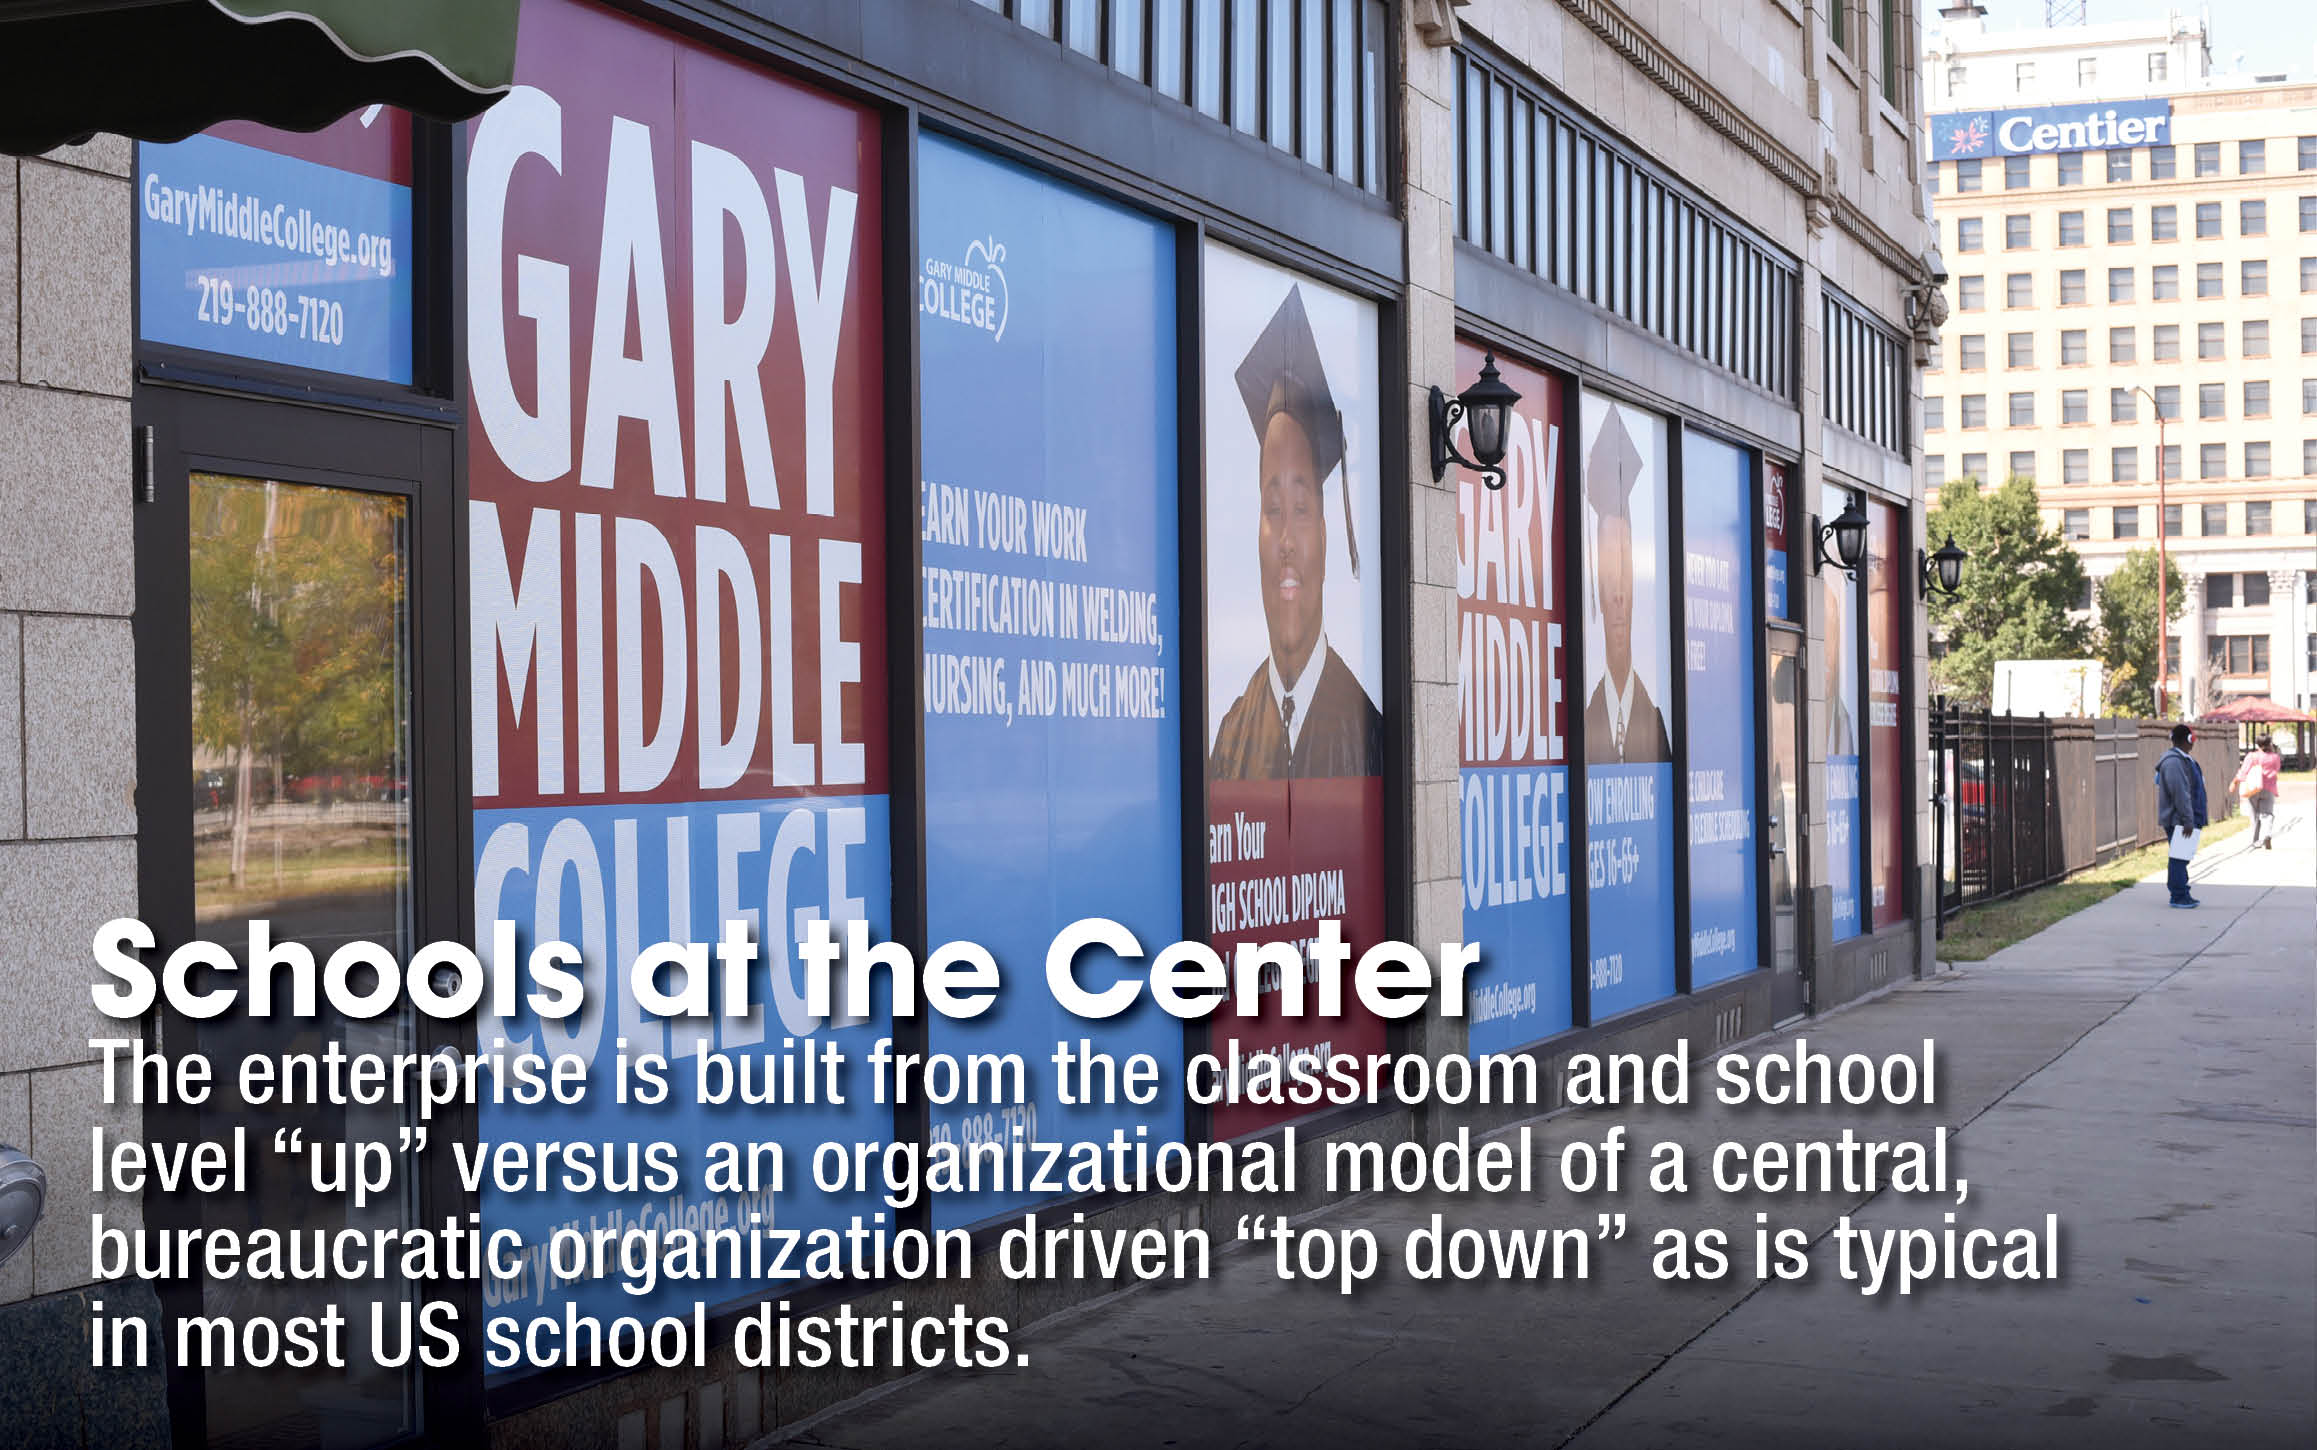 """Schools at the Center - The enterprise is built from the classroom and school level """"up"""" versus an organizational model of a central, bureaucratic organization driven """"top down"""" as is typical in most US school districts."""